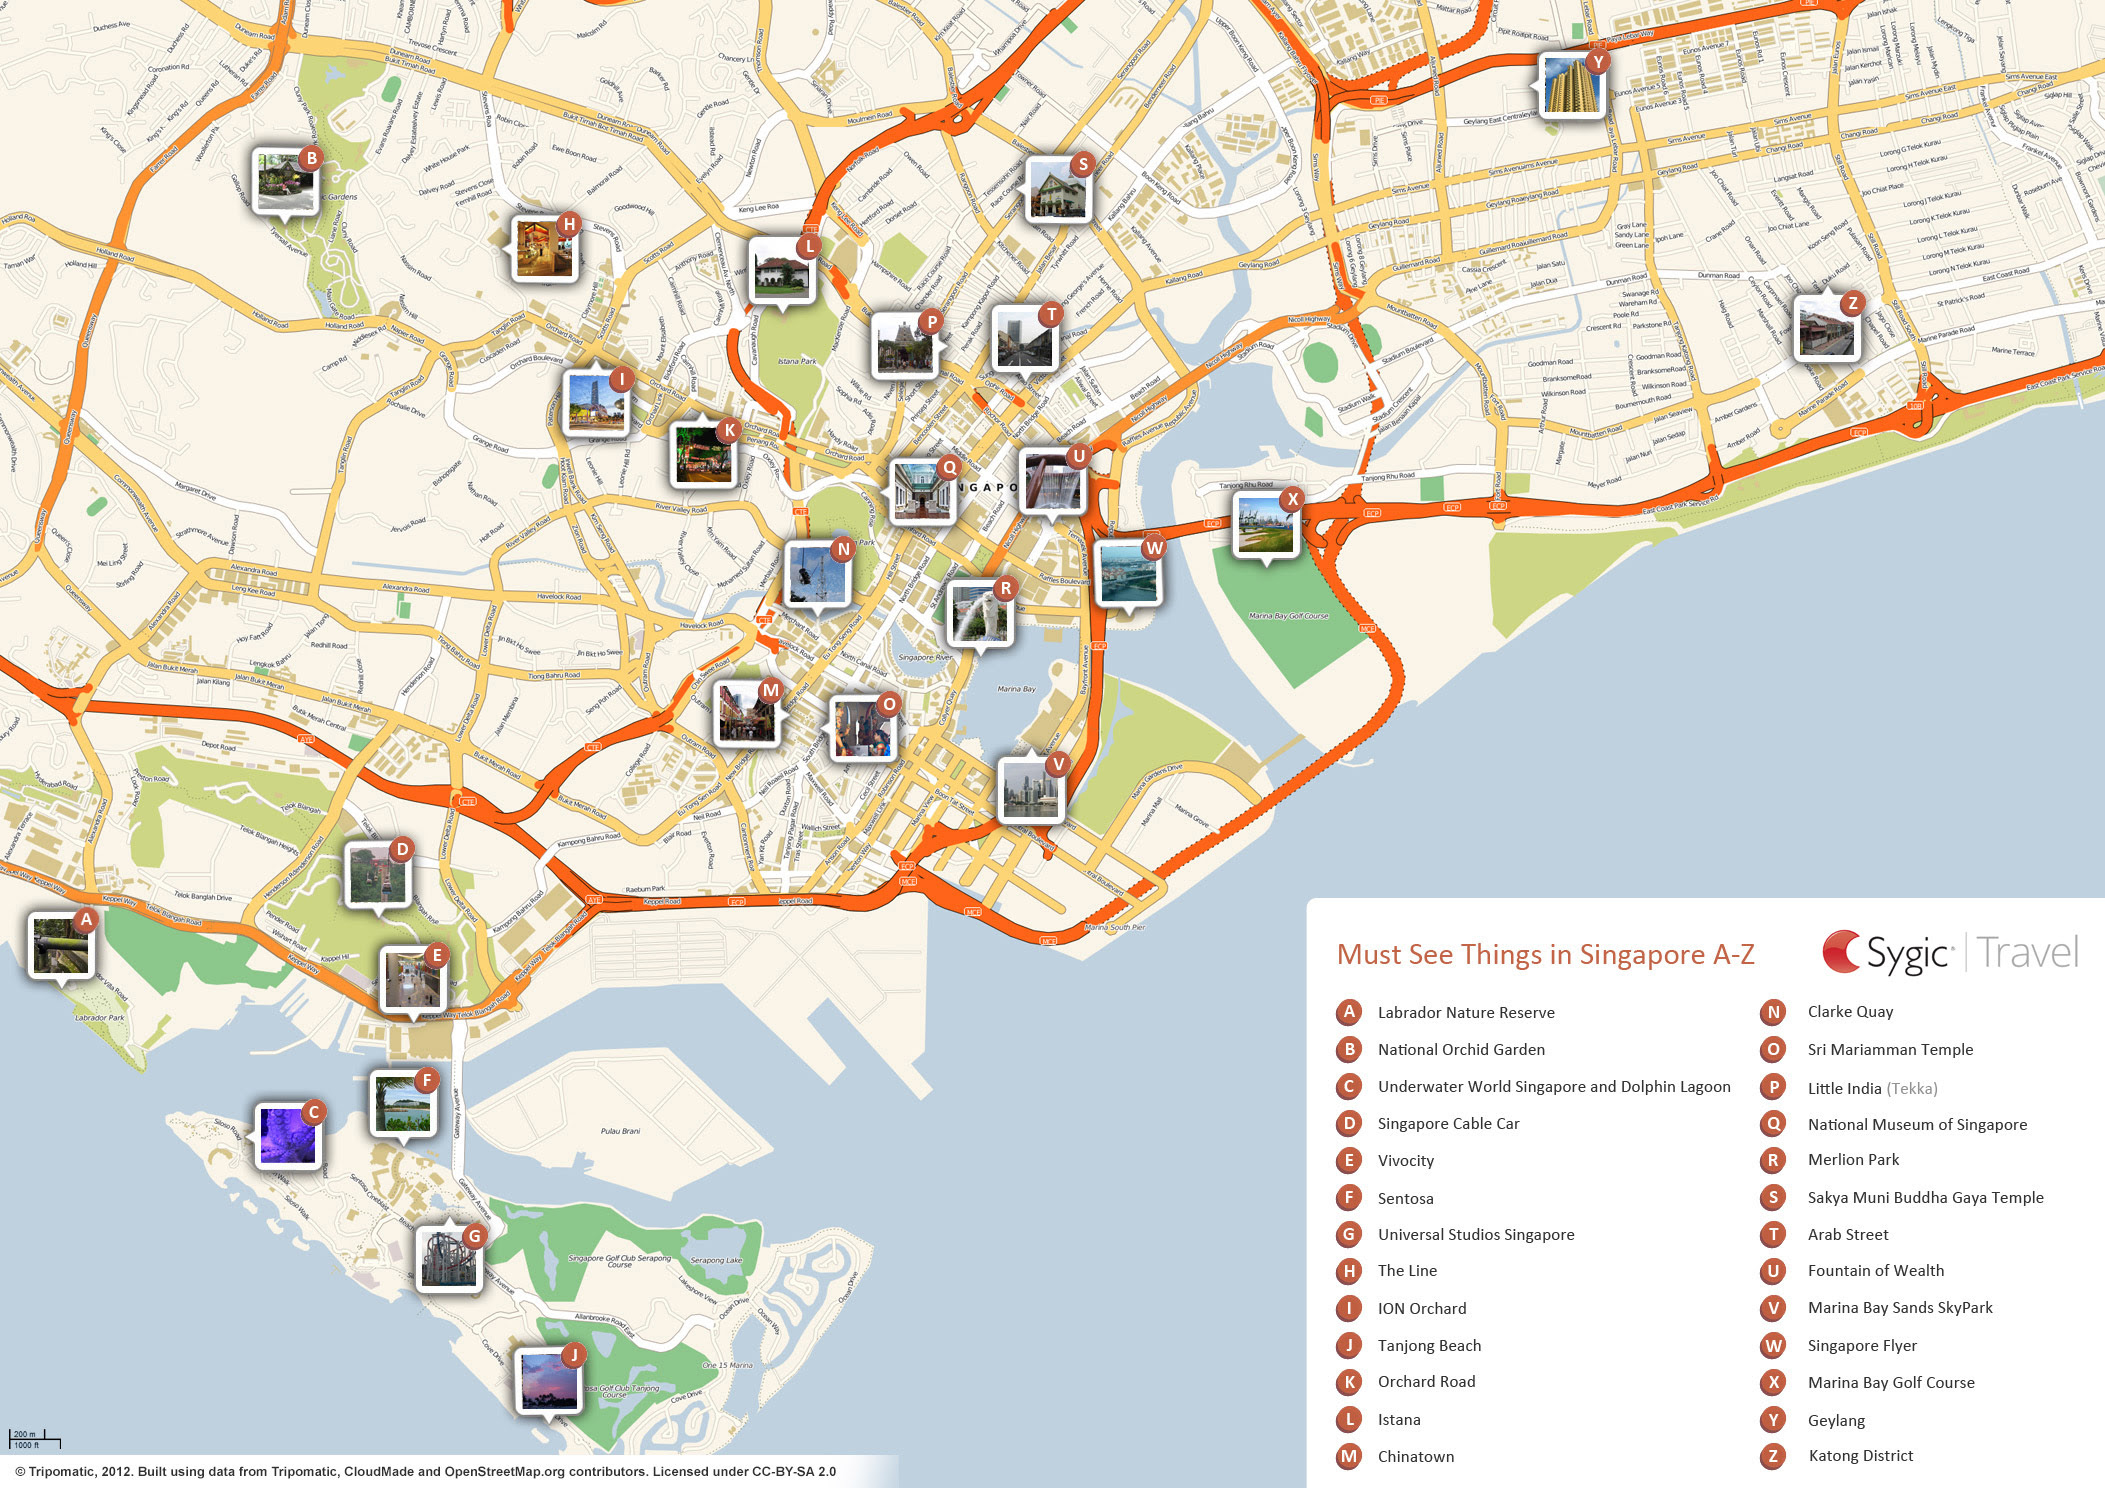 Complete Singapore Tourist Destinations and Attractions Map,Map of  Singapore Tourist Destinations and Attractions,tourist attractions in singapore,places to visit in singapore,singapore travel guide tourism map,things to do in singapore